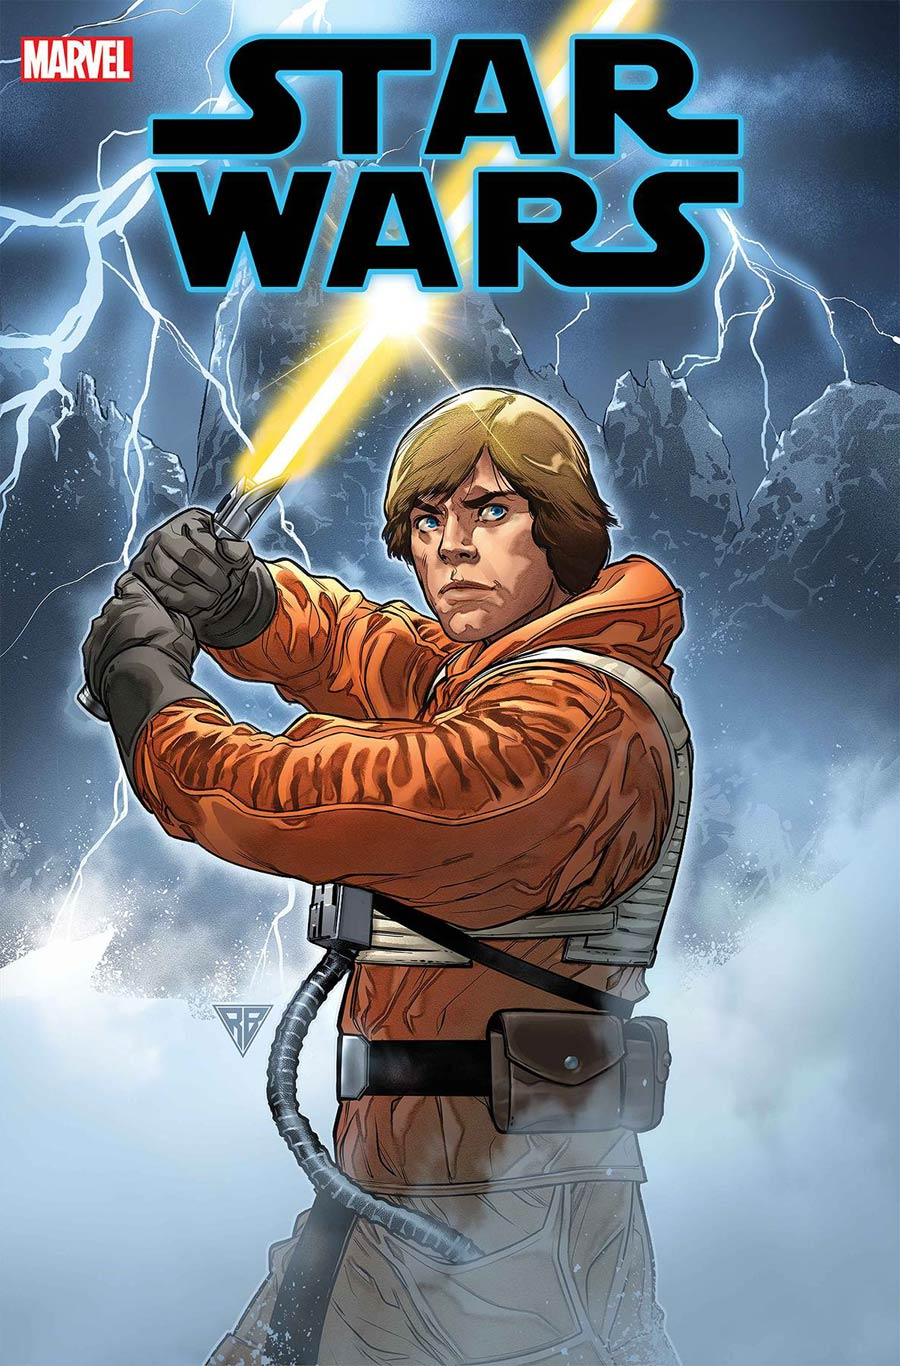 Star Wars Vol 5 #6 Cover A Regular RB Silva Cover